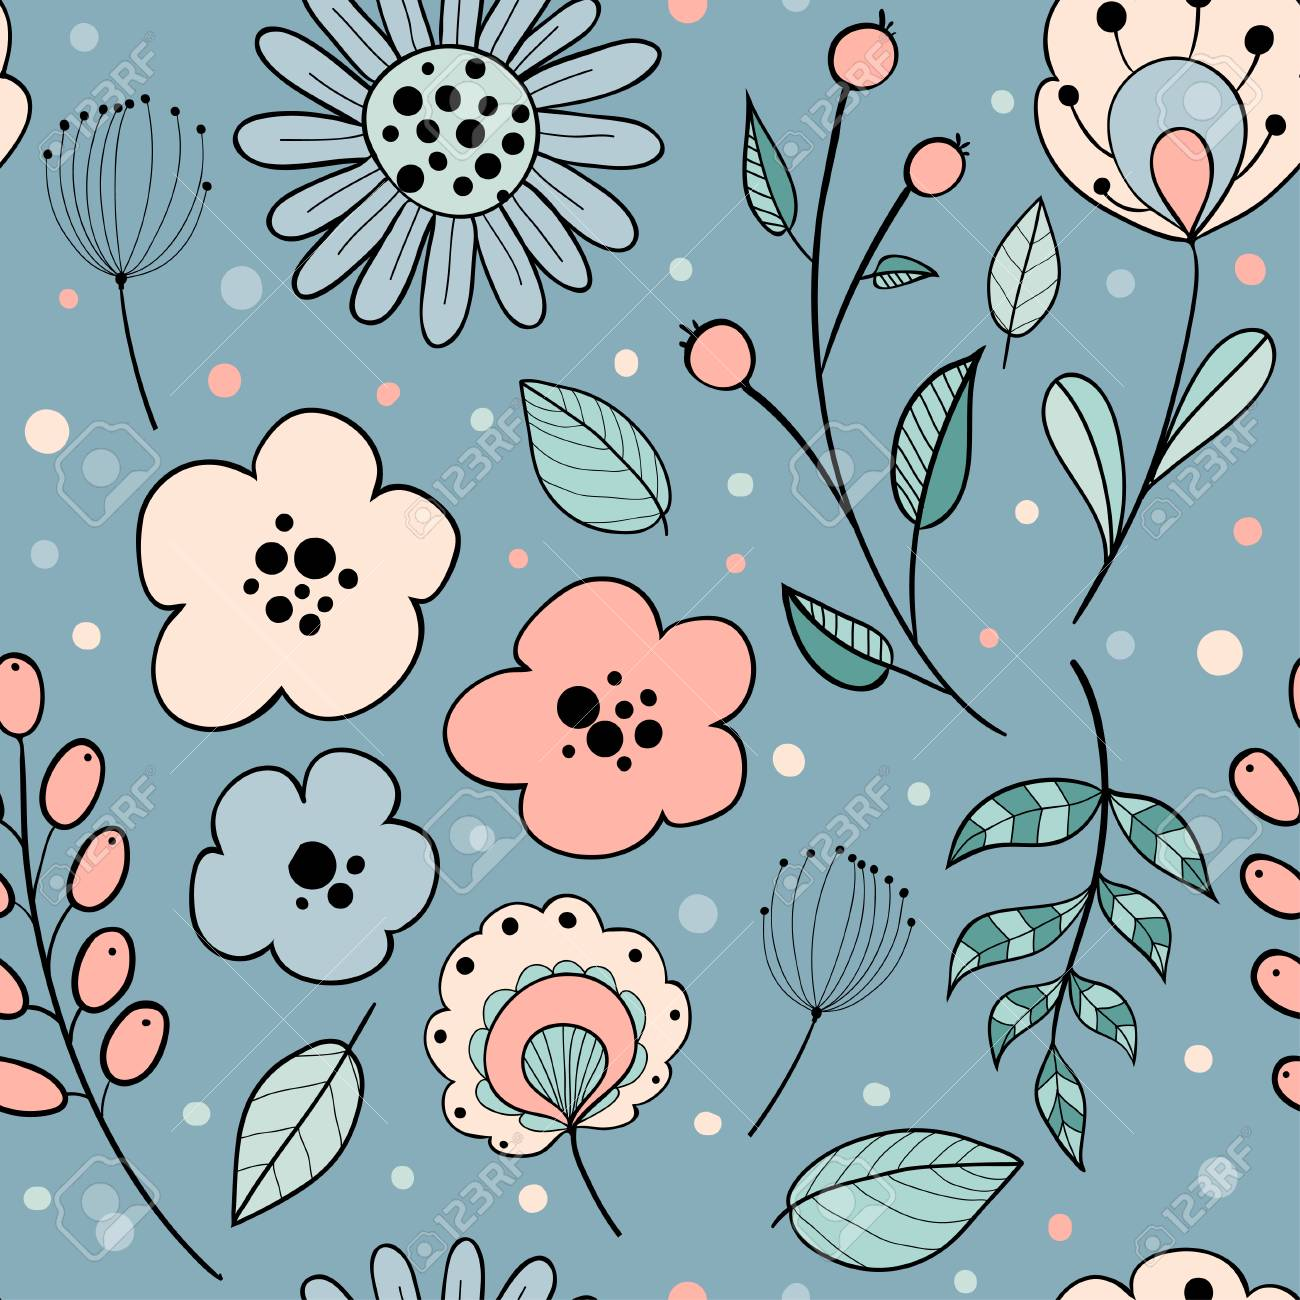 Abstract Floral Graphic Design Trendy Creative Seamless Pattern